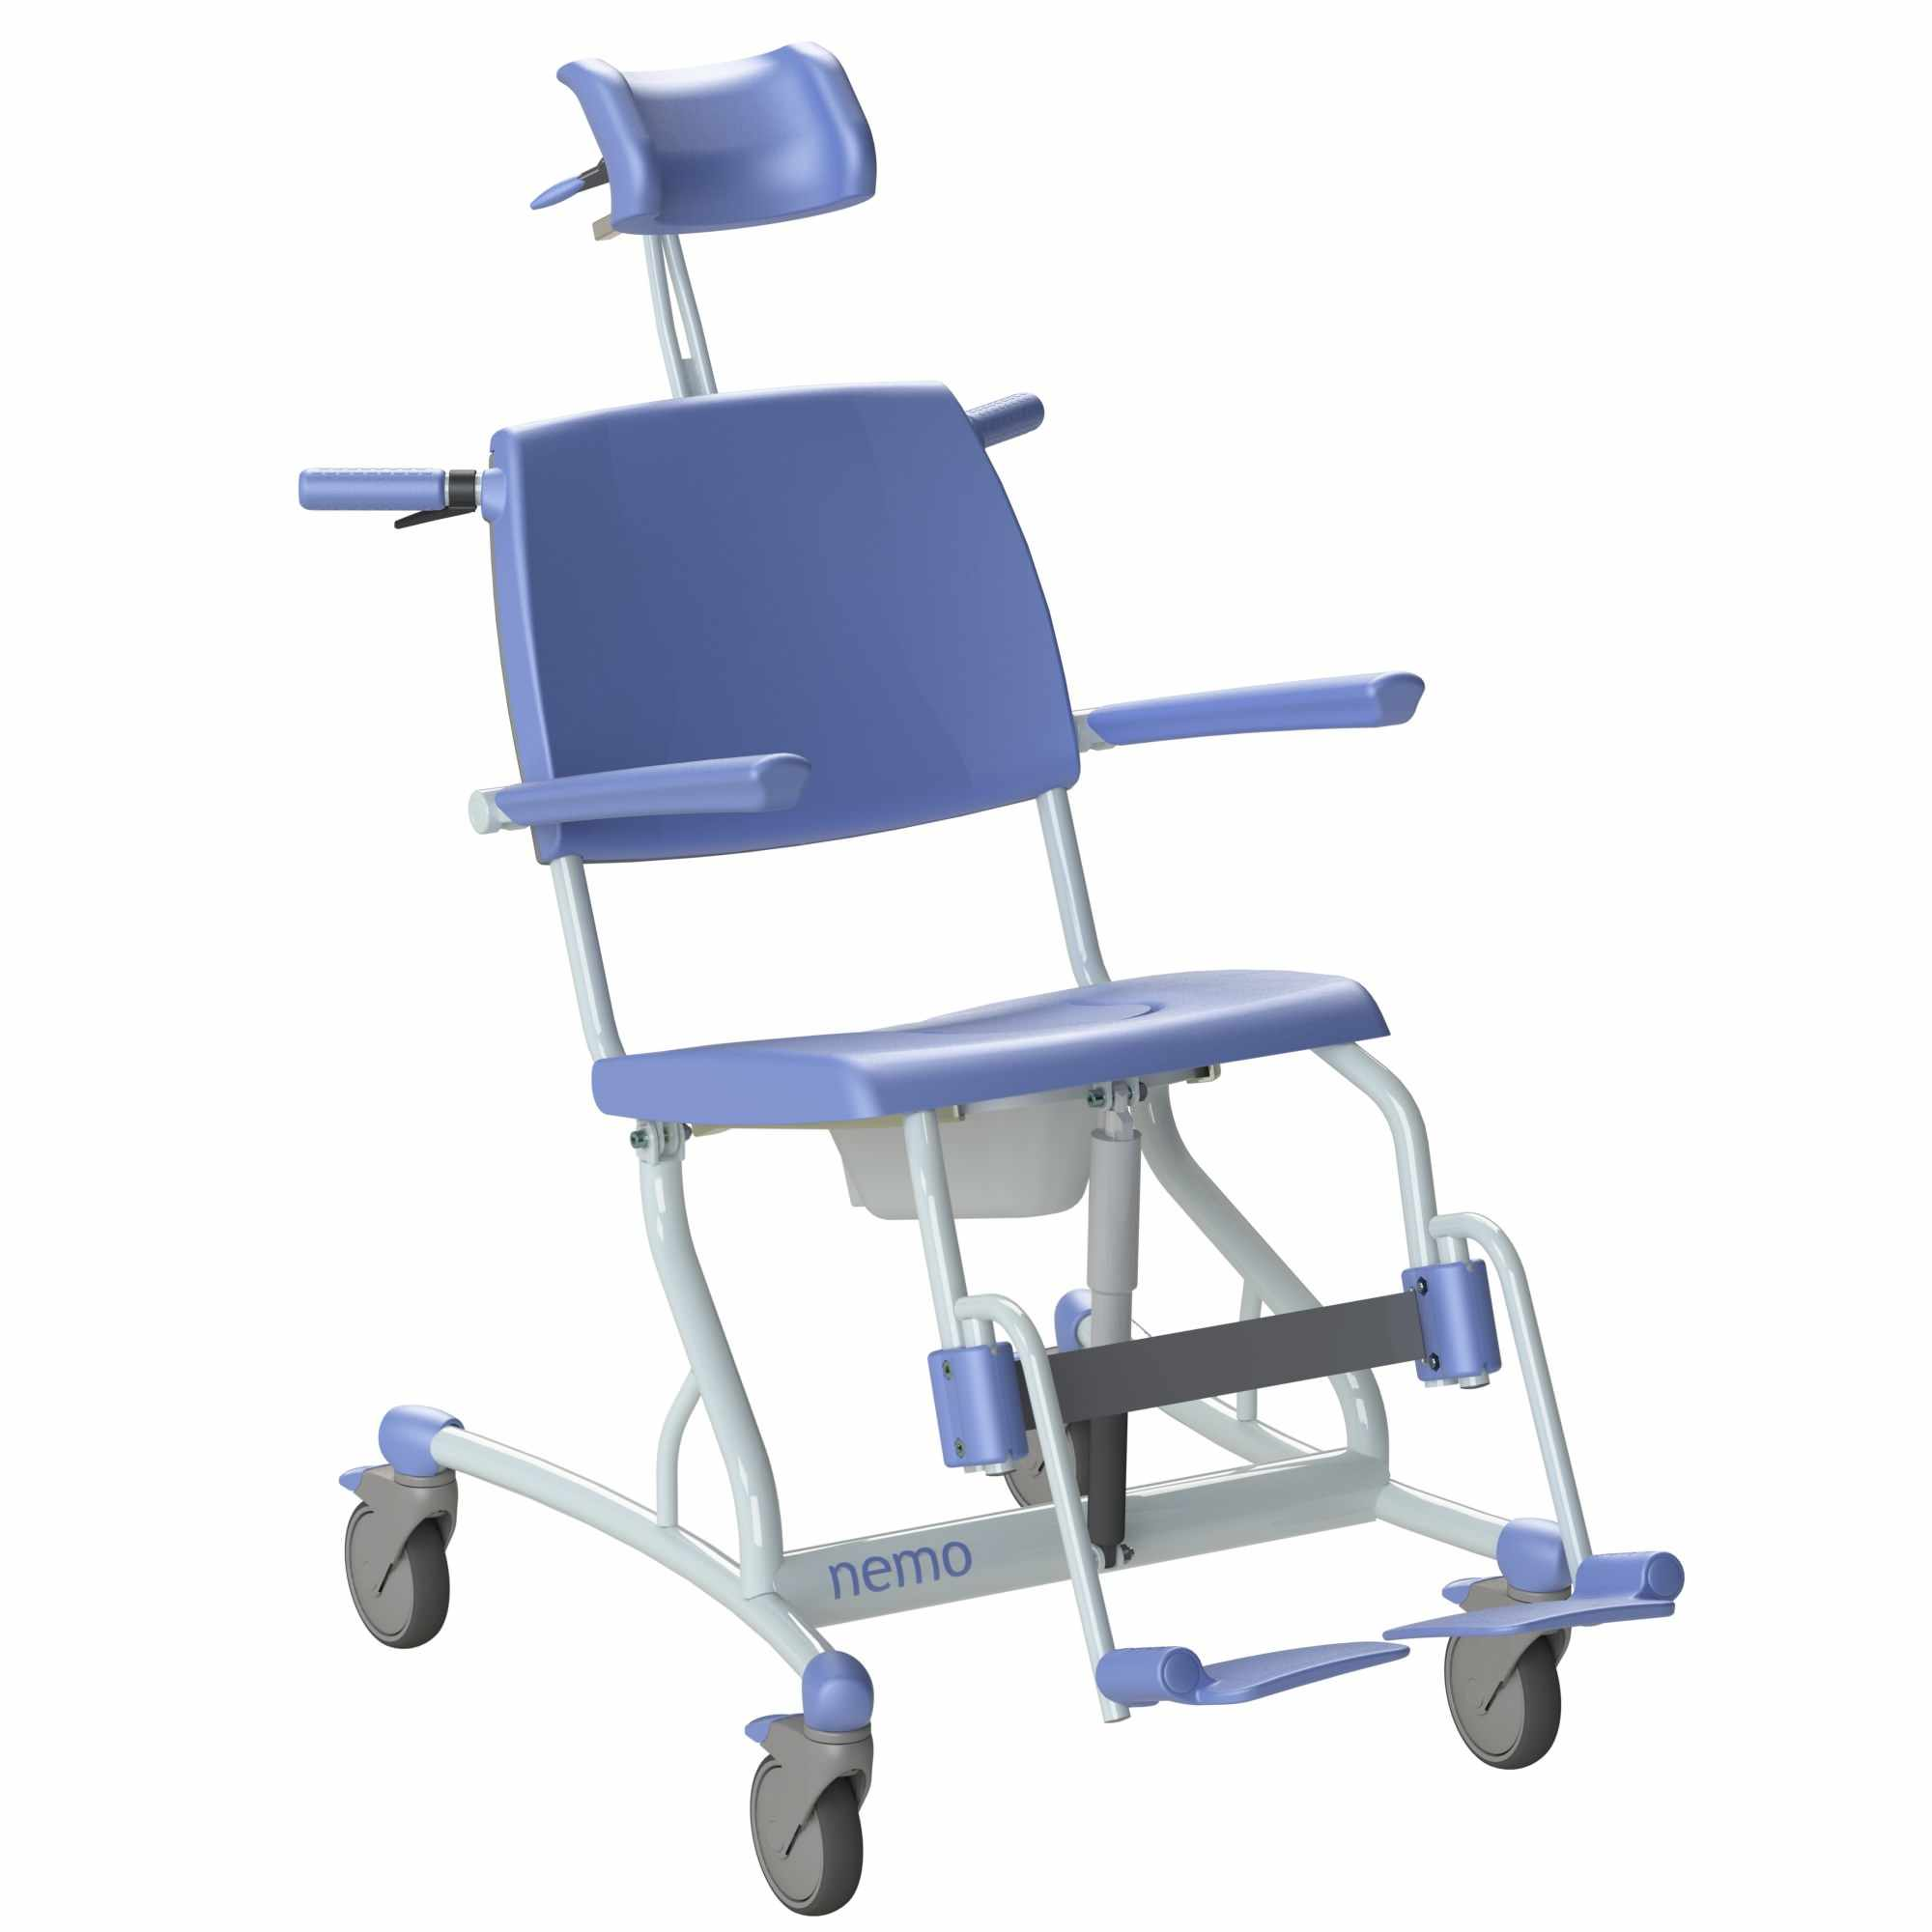 Lopital Nemo Mobile Tilt Shower Chair